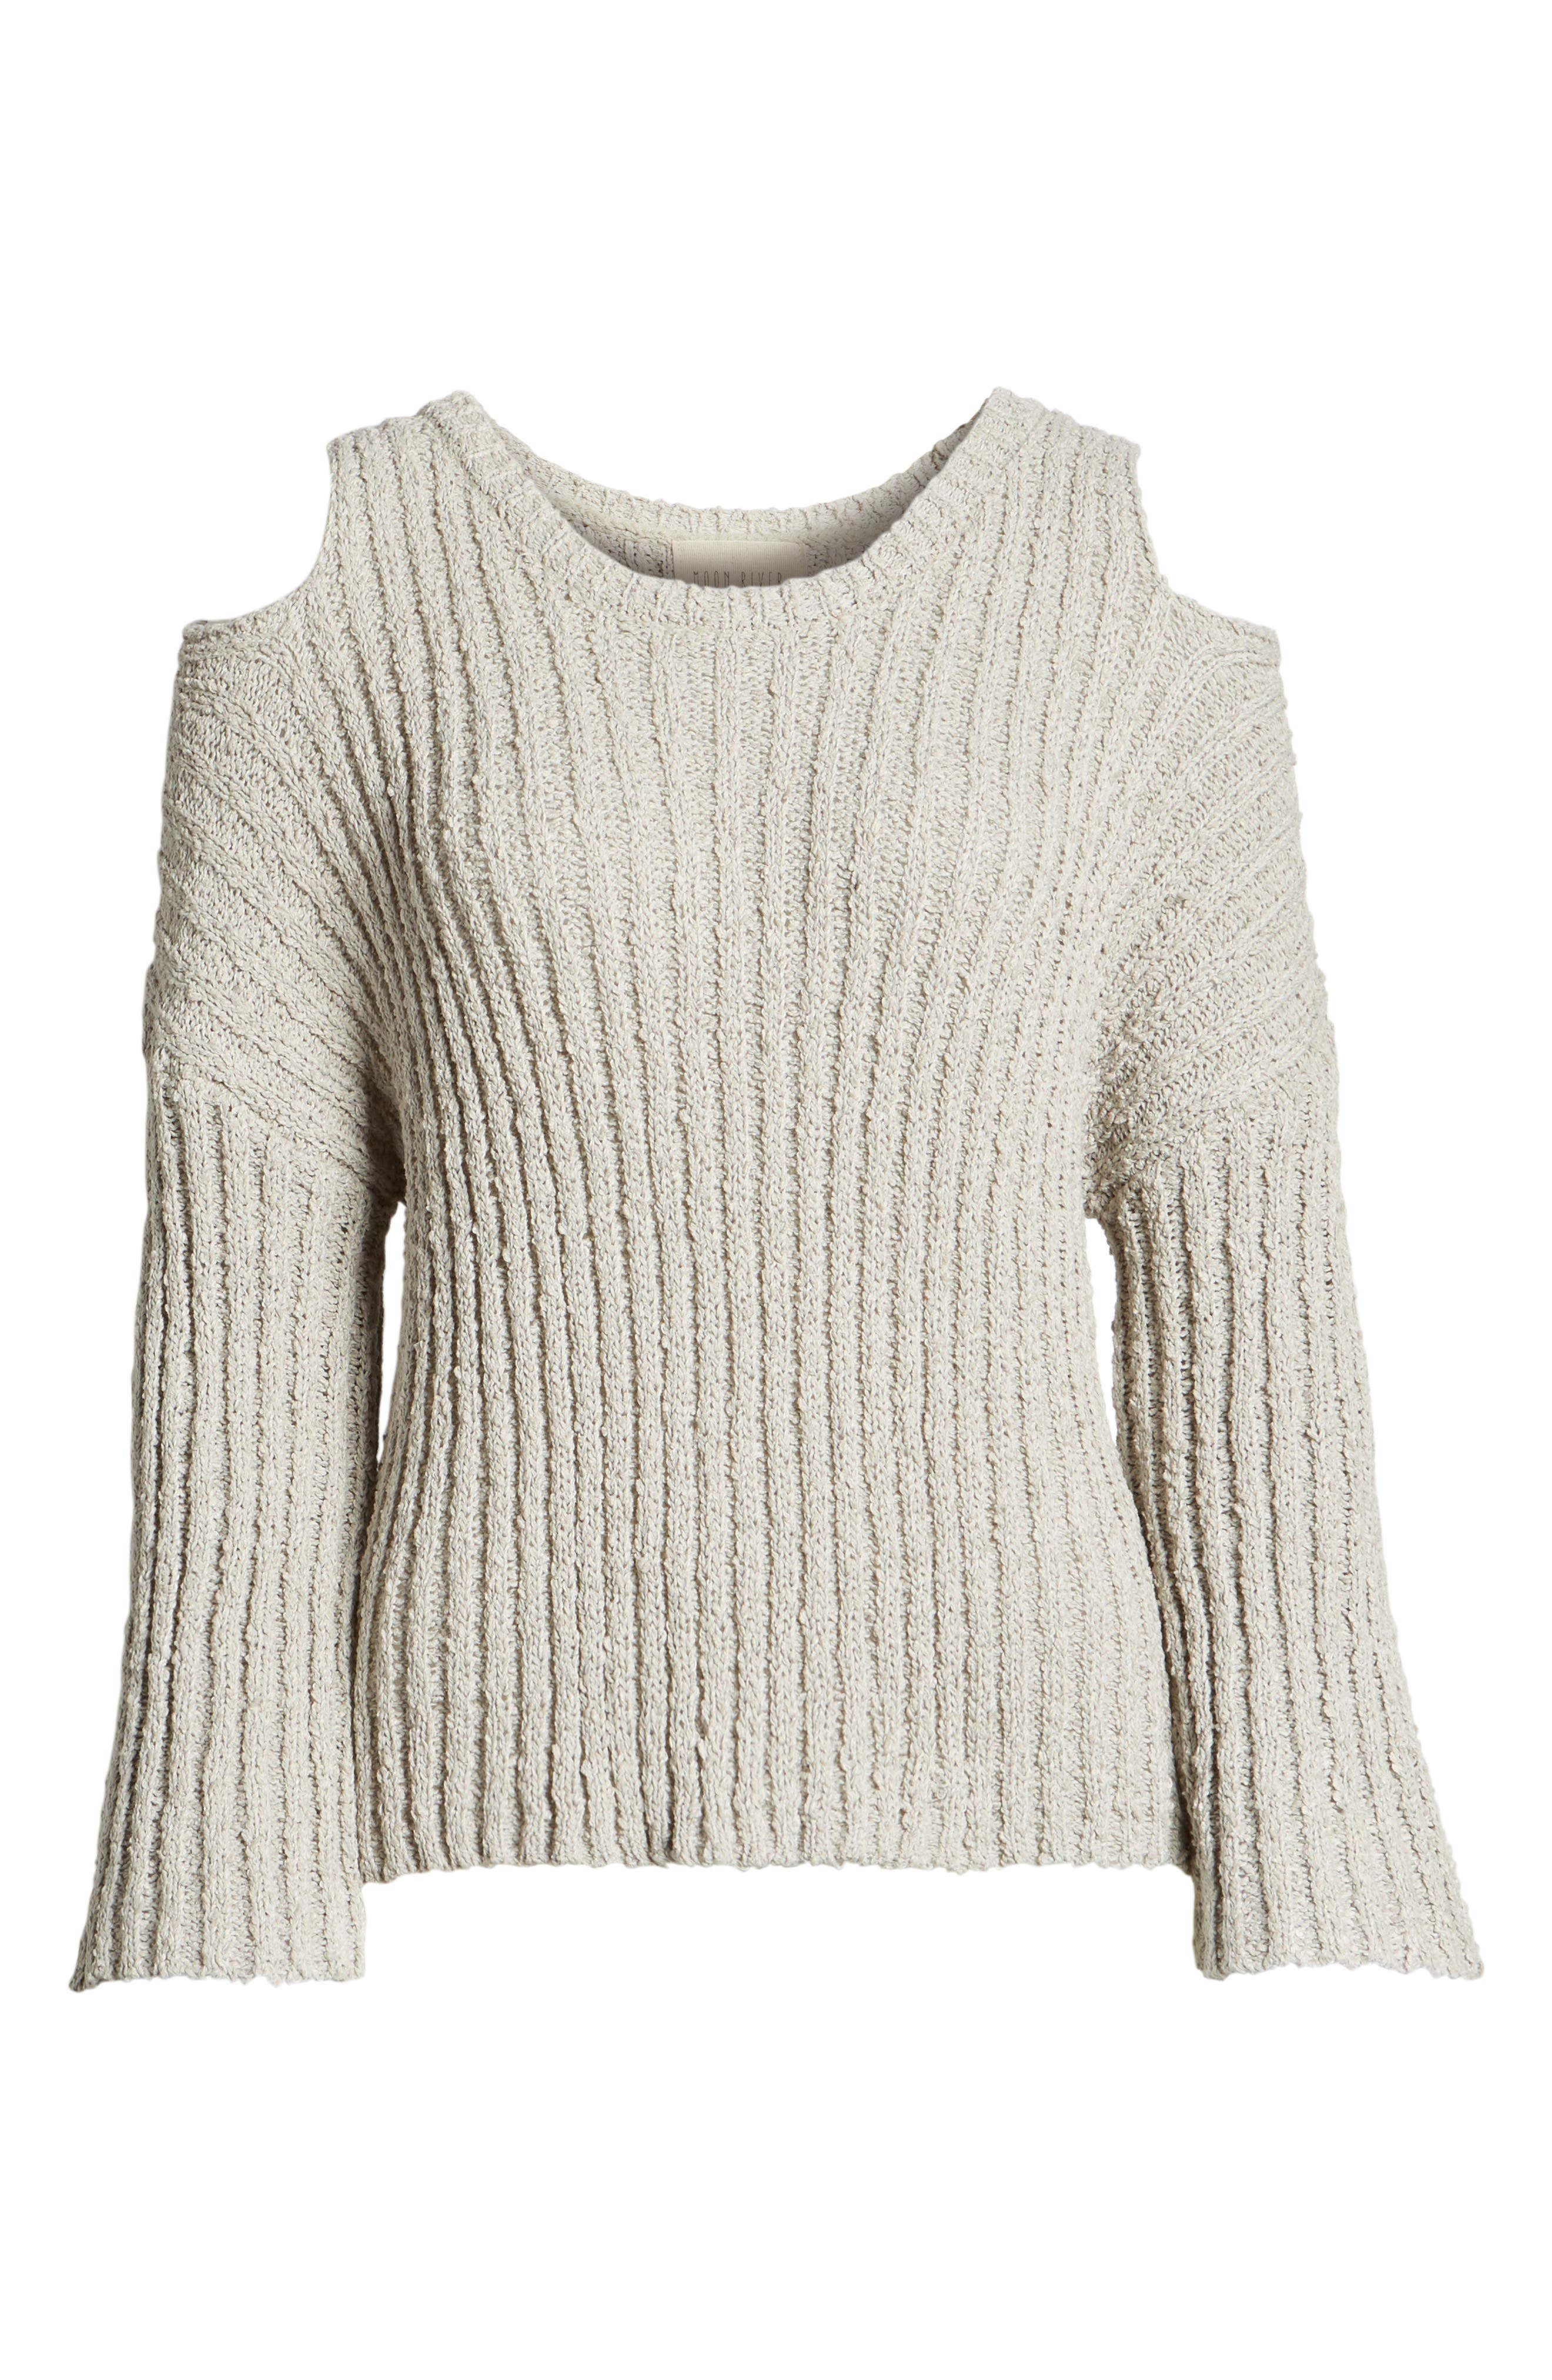 Fuzzy Knit Cold Shoulder Sweater,                             Alternate thumbnail 6, color,                             Grey